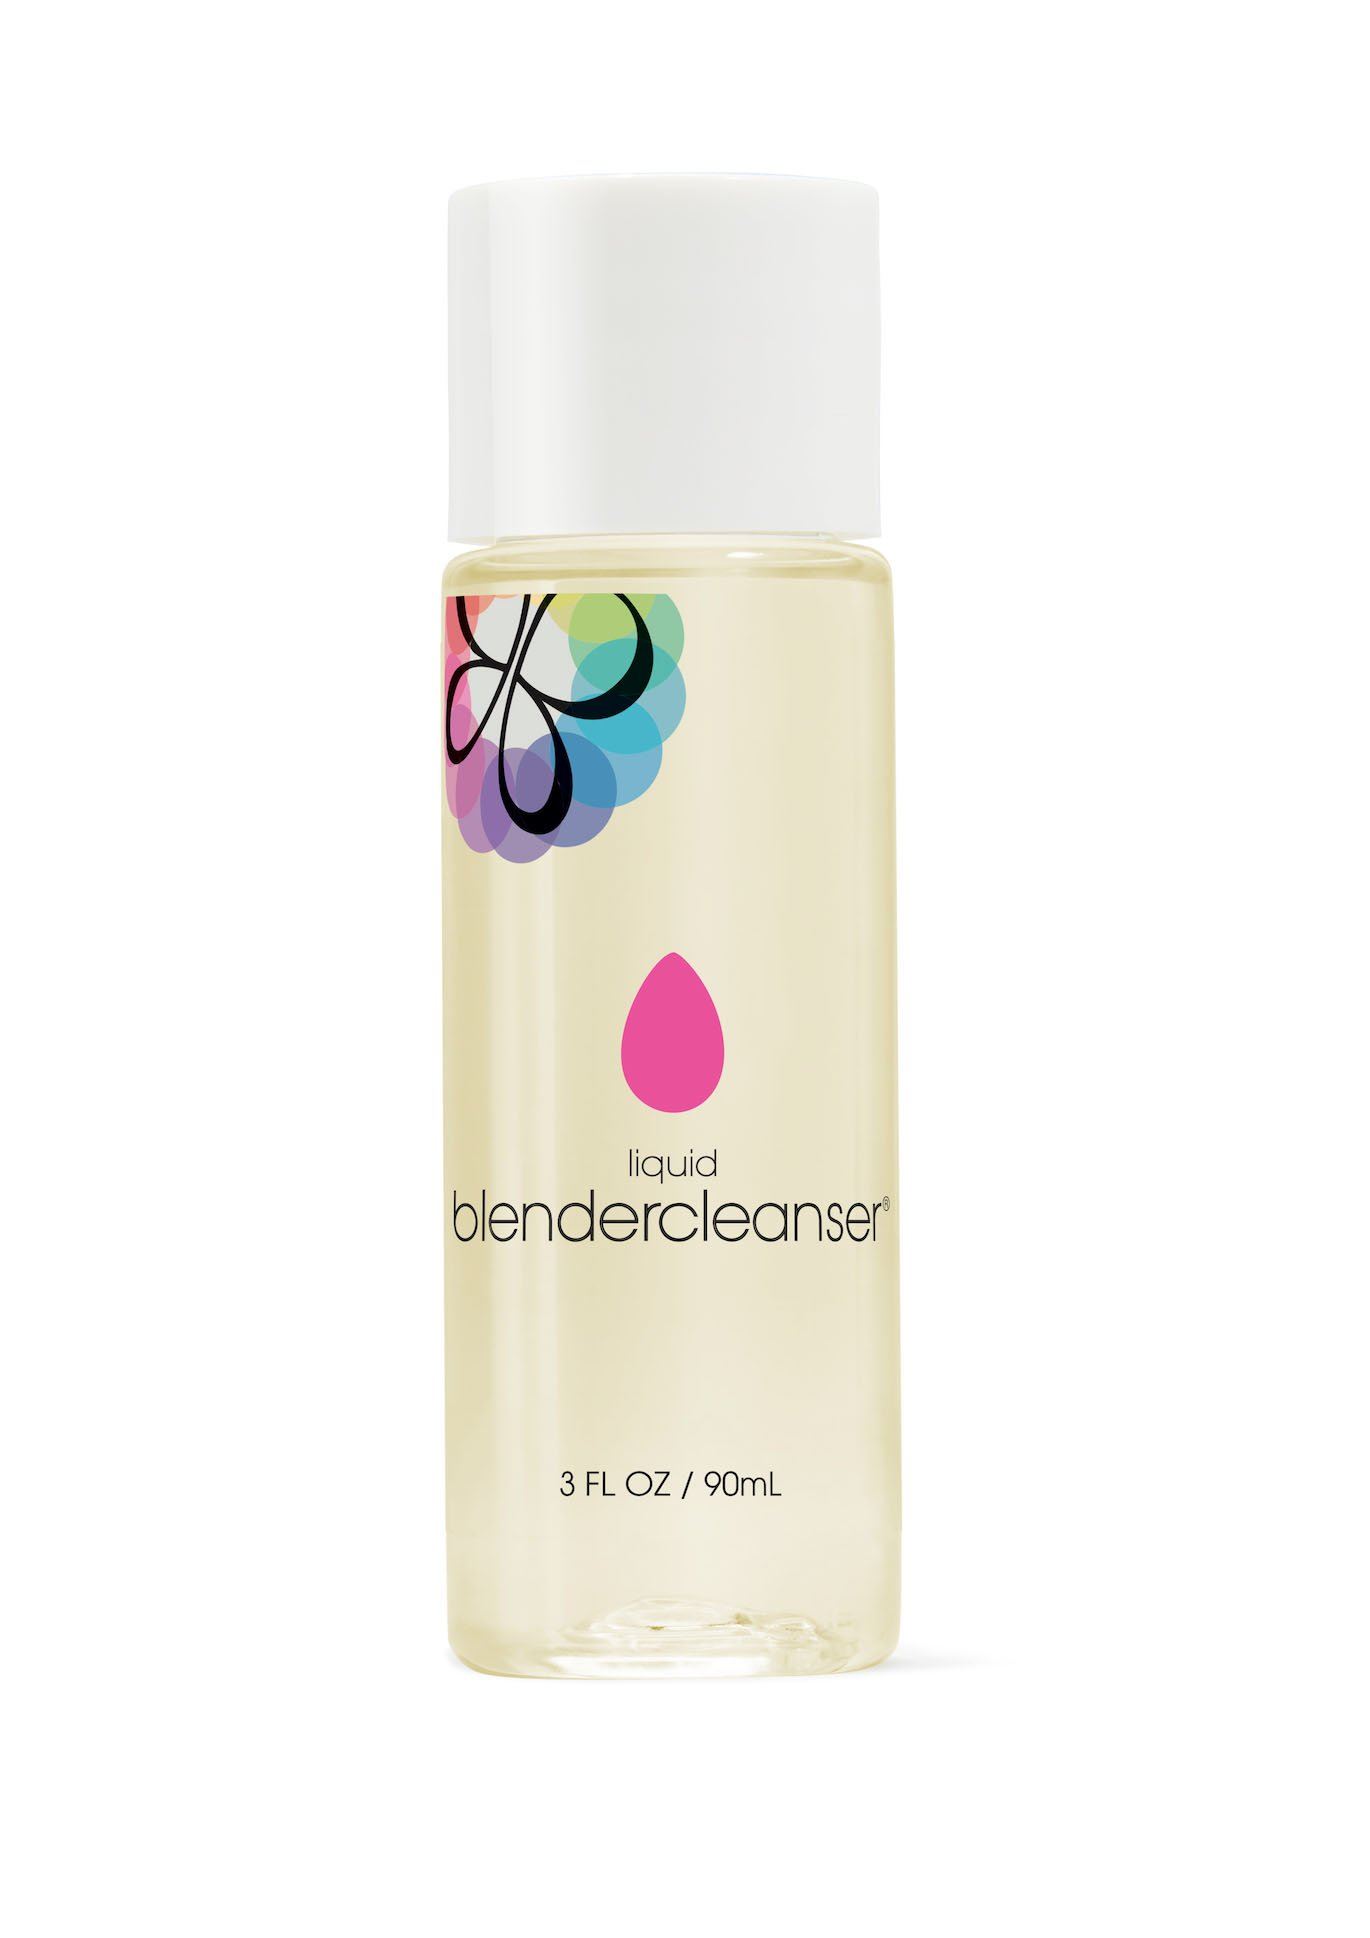 beautyblender liquid blendercleanser, 3 oz: for Cleaning Makeup Sponges & Brushes